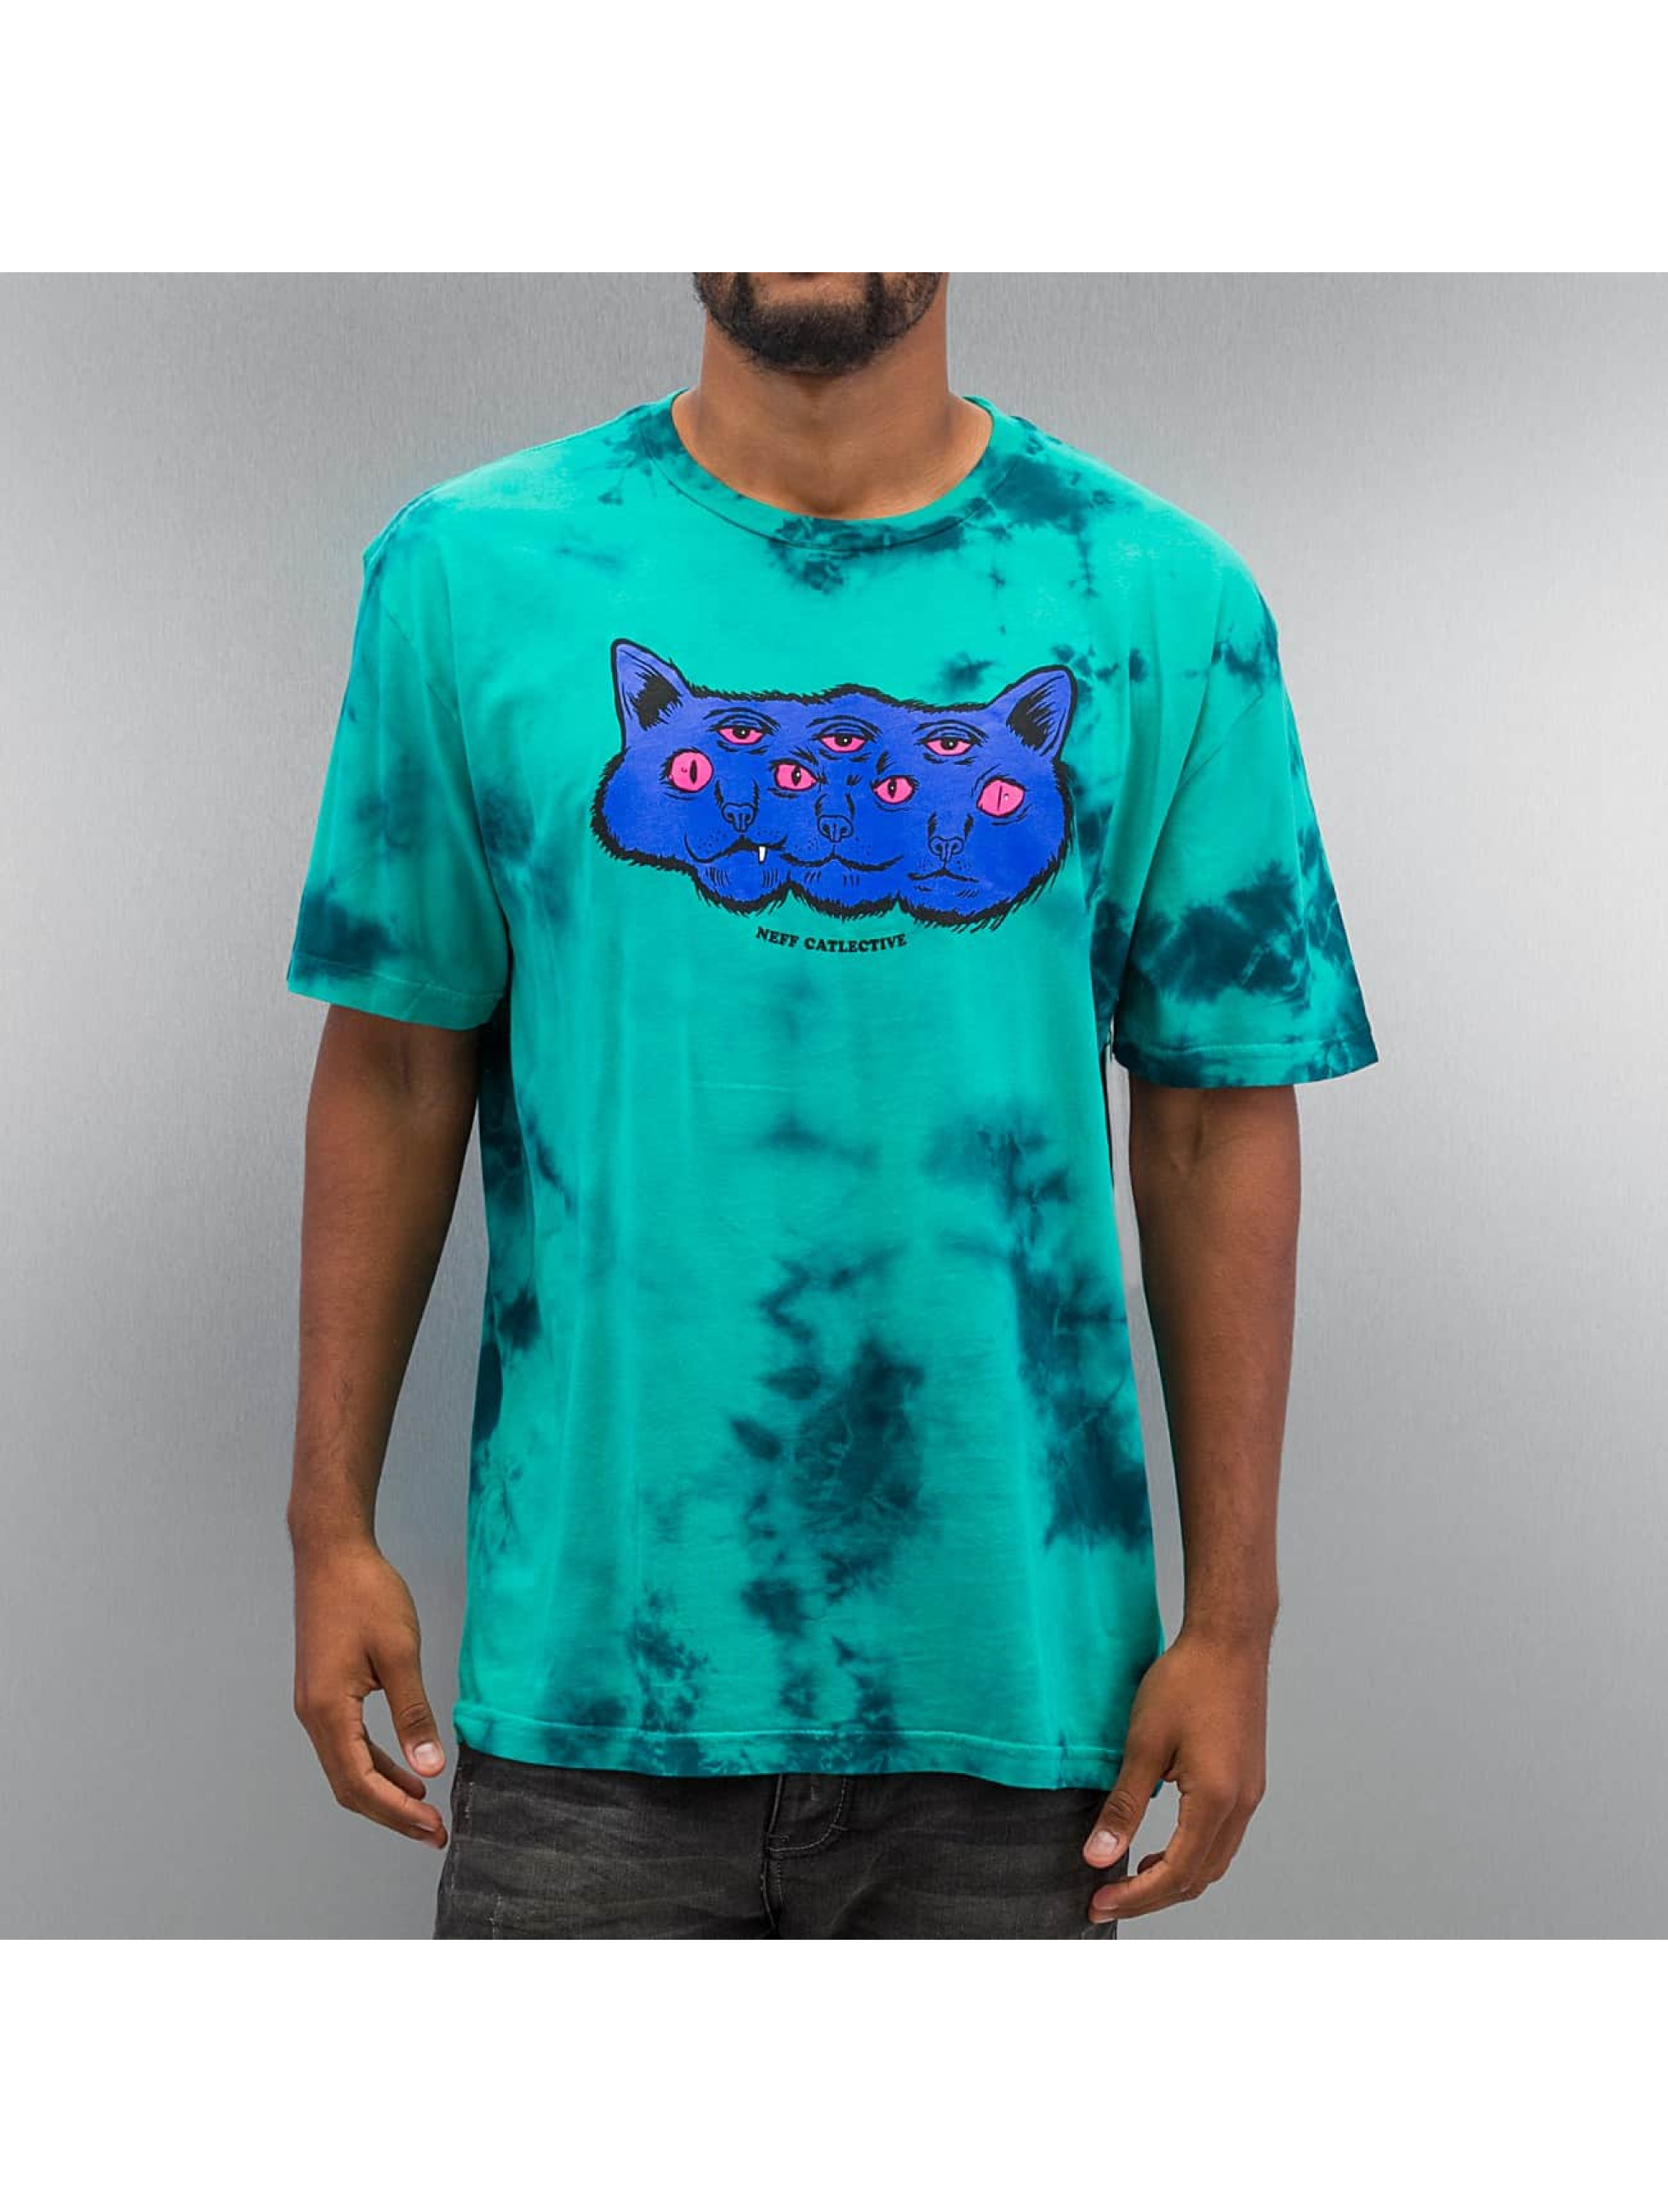 NEFF t-shirt Catlective turquois